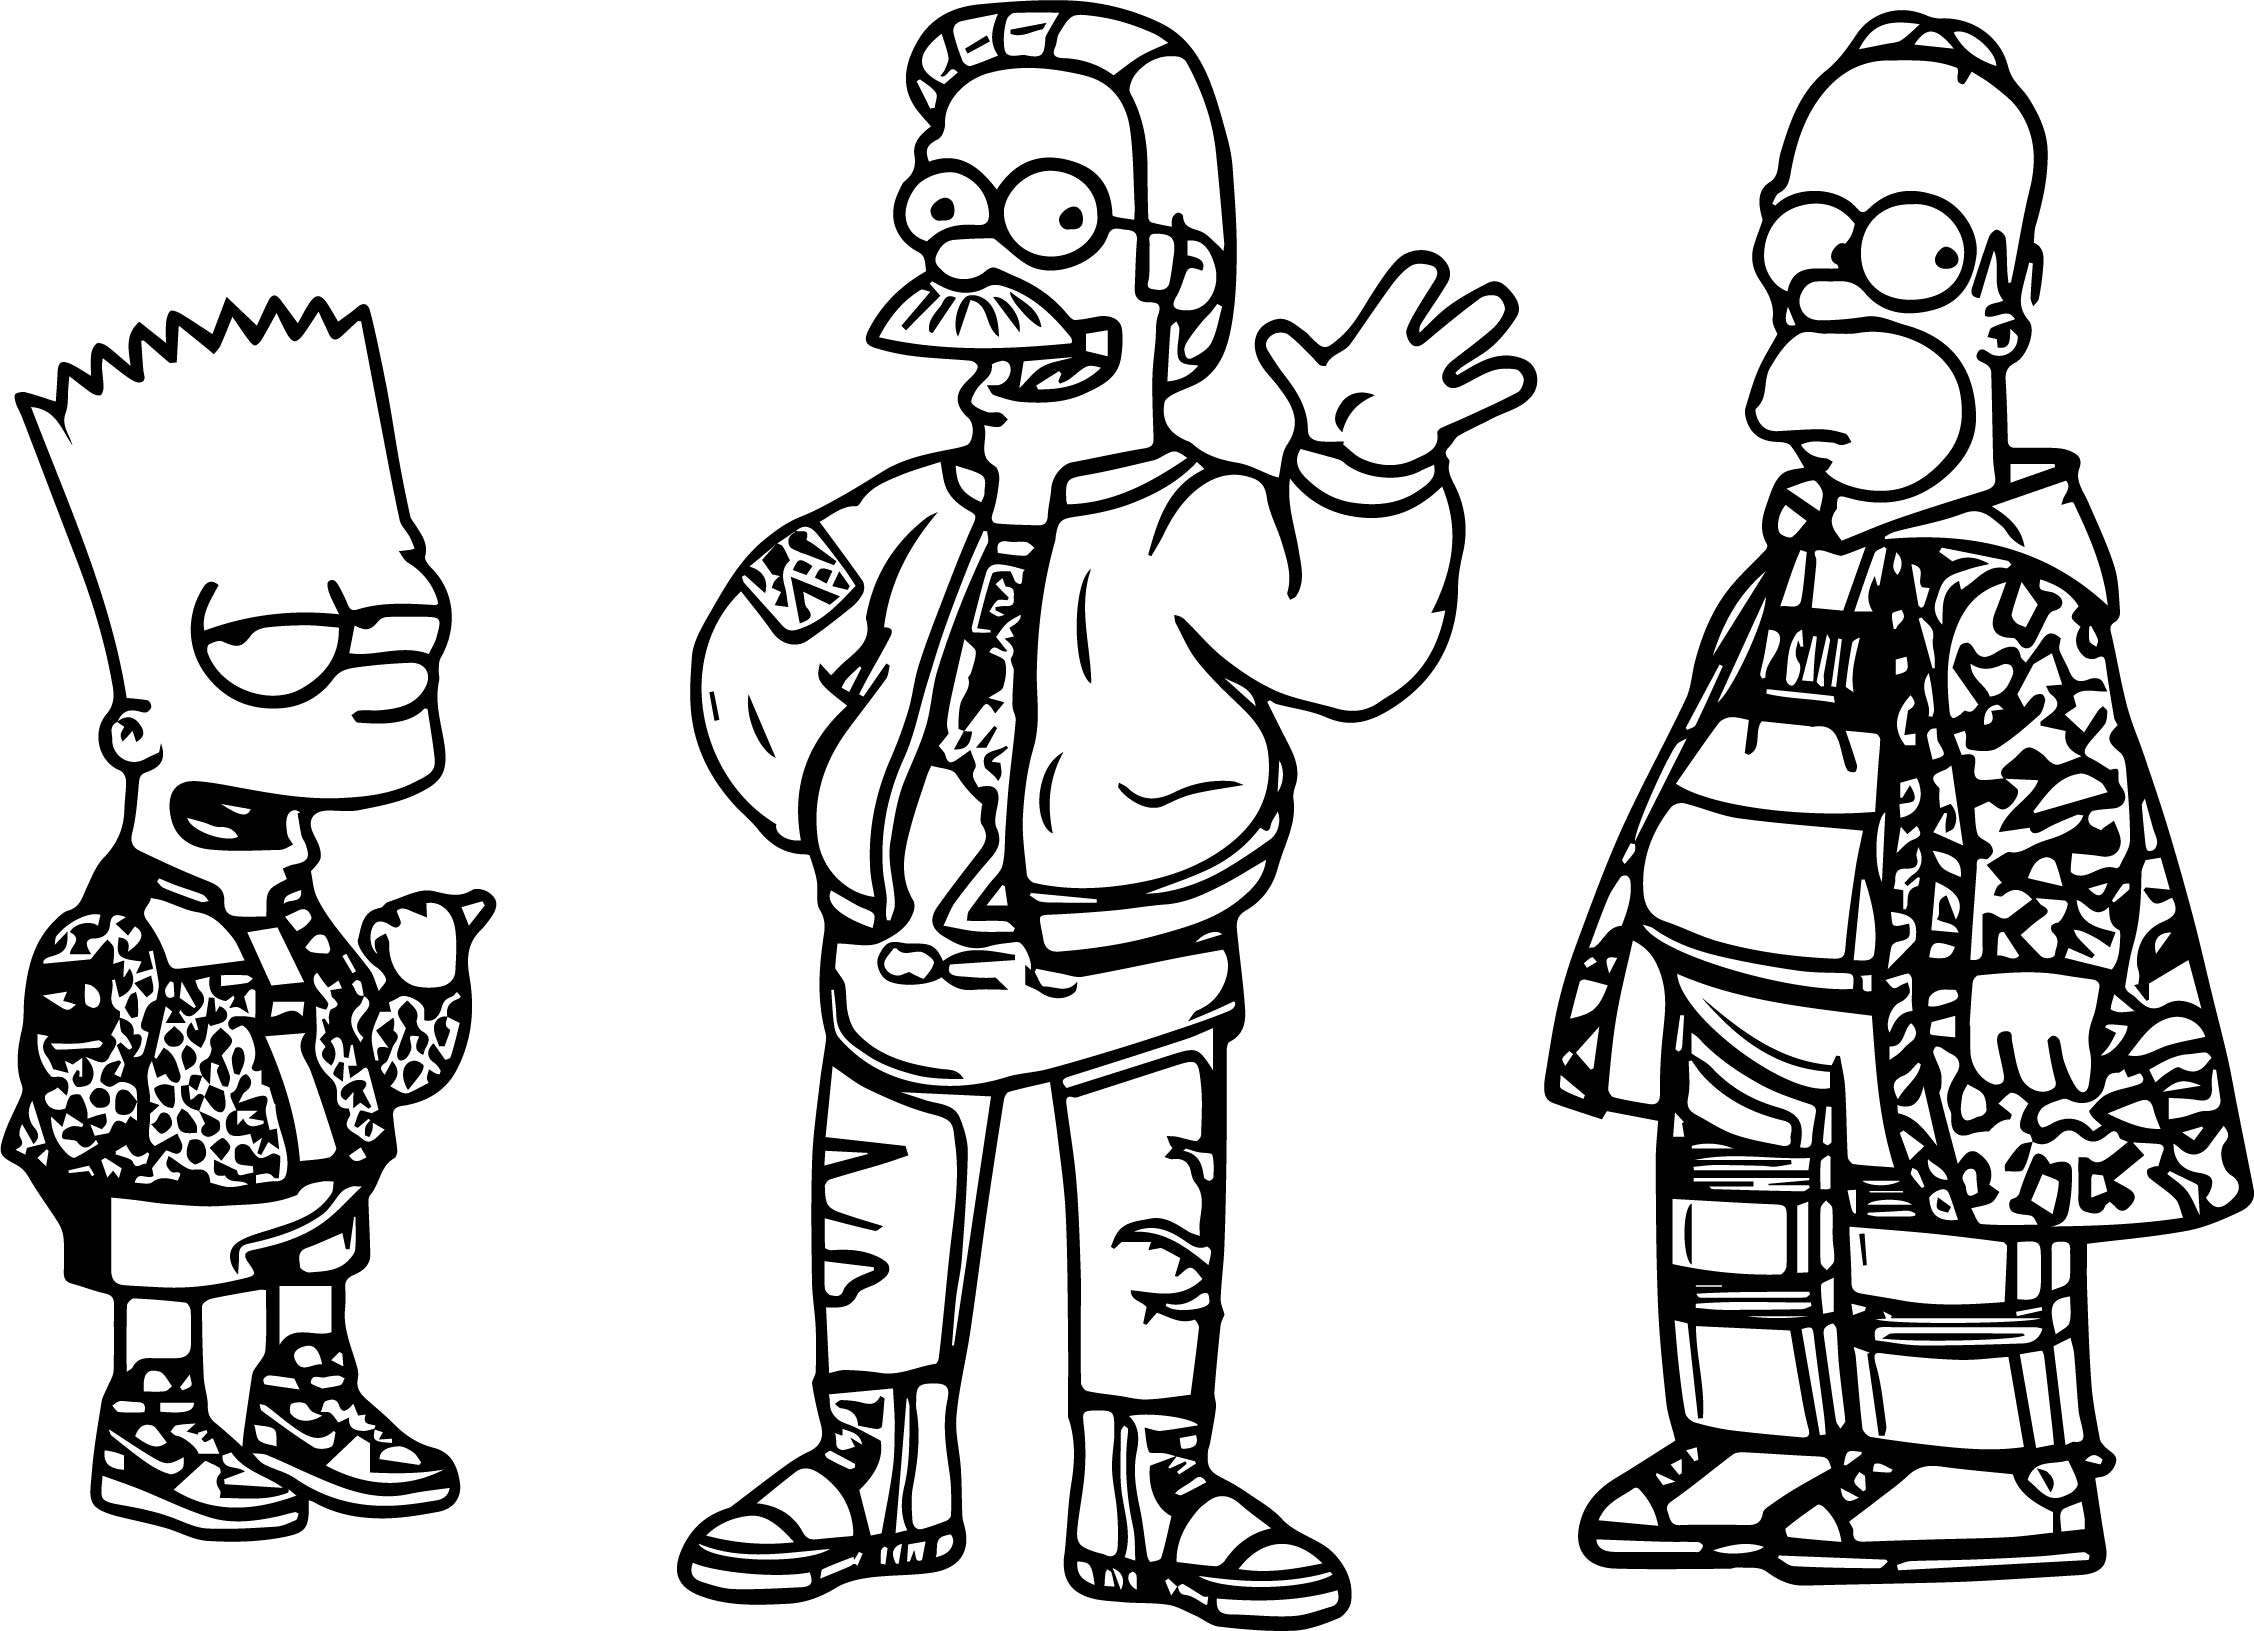 The Simpsons Tommy Bates Header Coloring Page